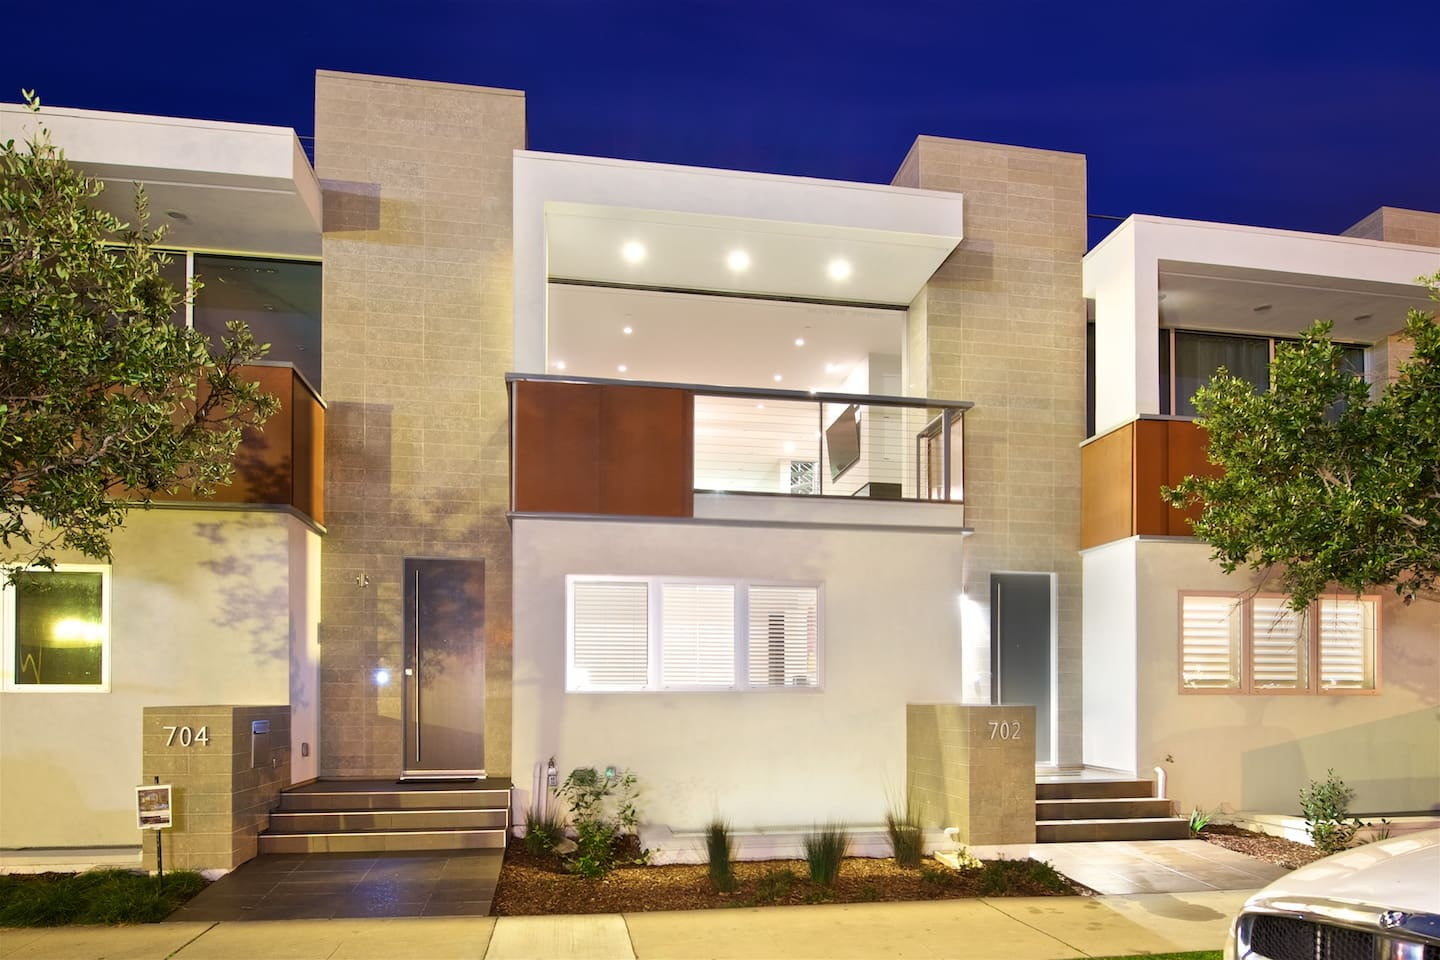 Modern architecture with beautiful views from main living area and rooftop deck.